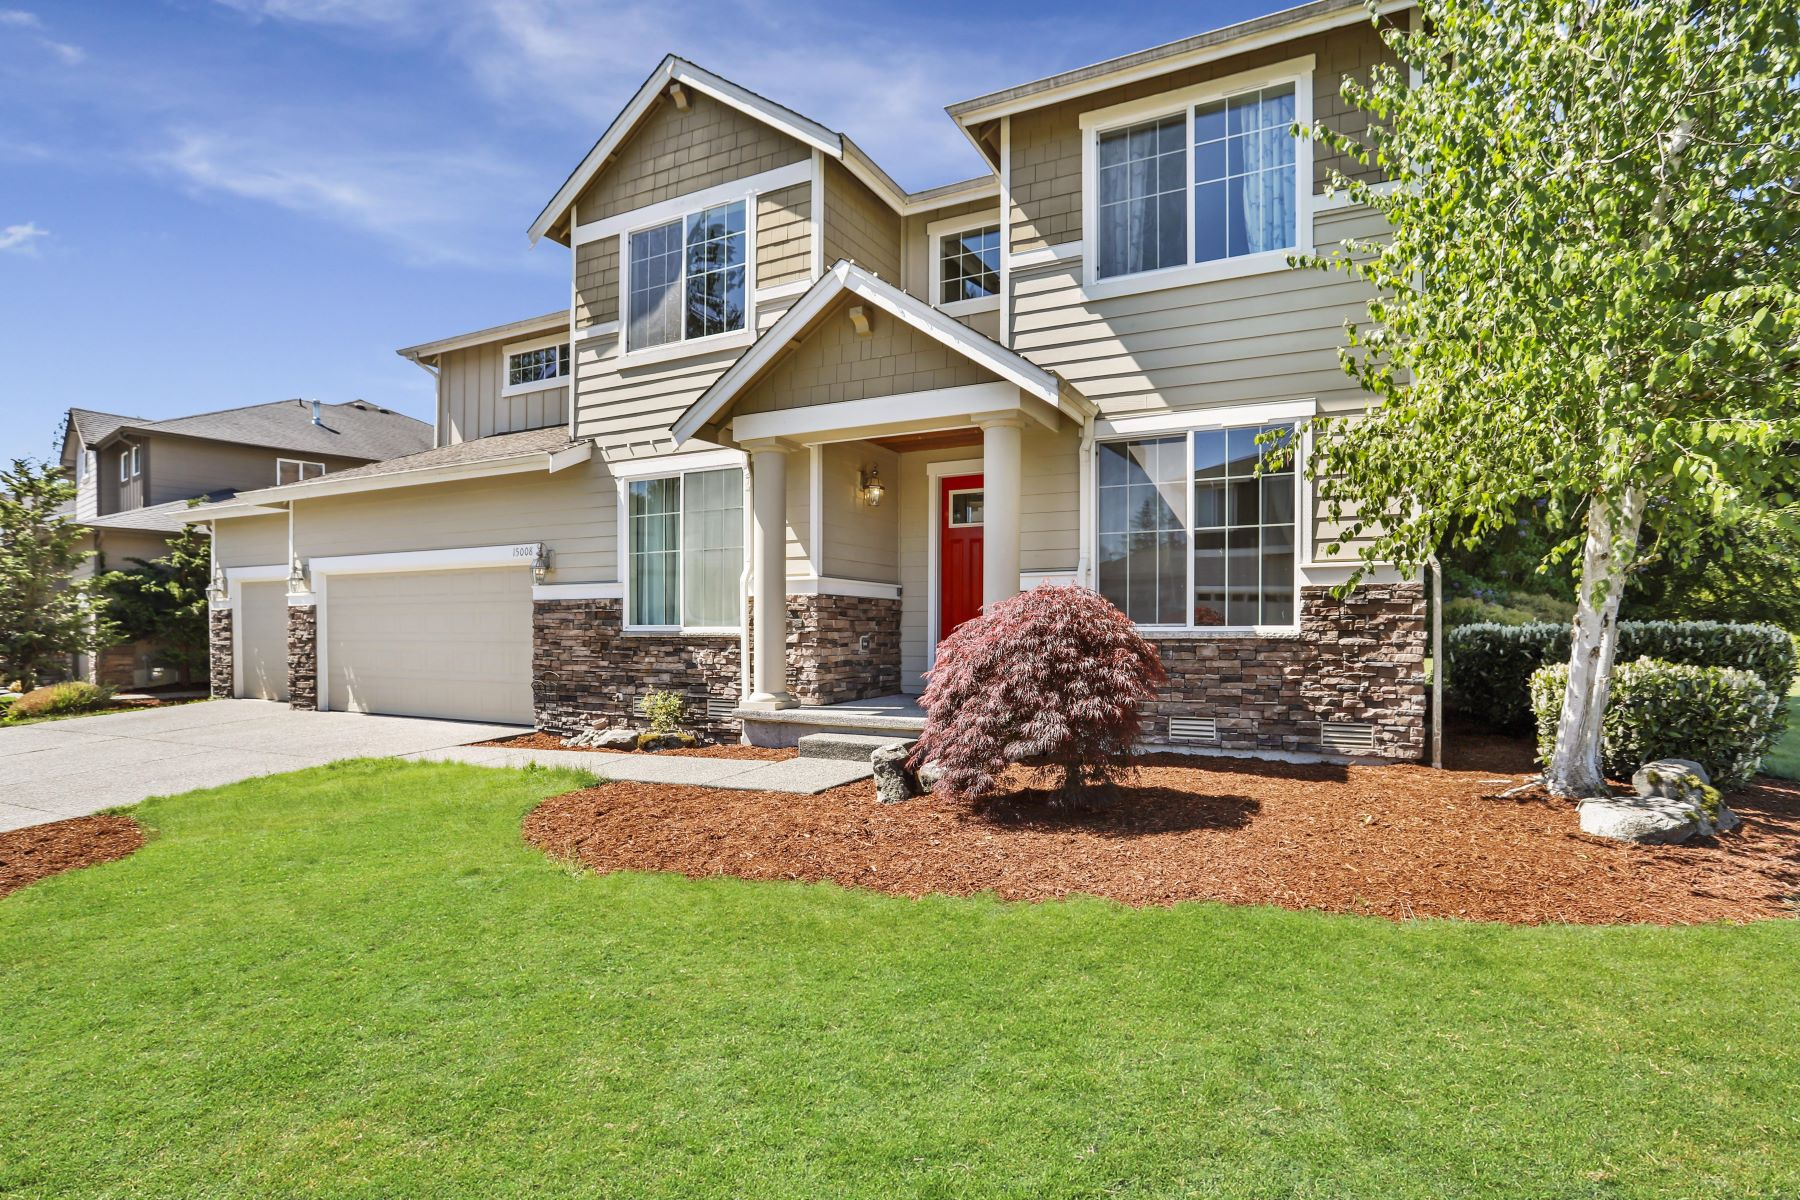 Single Family Homes for Sale at Peaceful Living in Monroe 15008 229th Dr SE Monroe, Washington 98272 United States